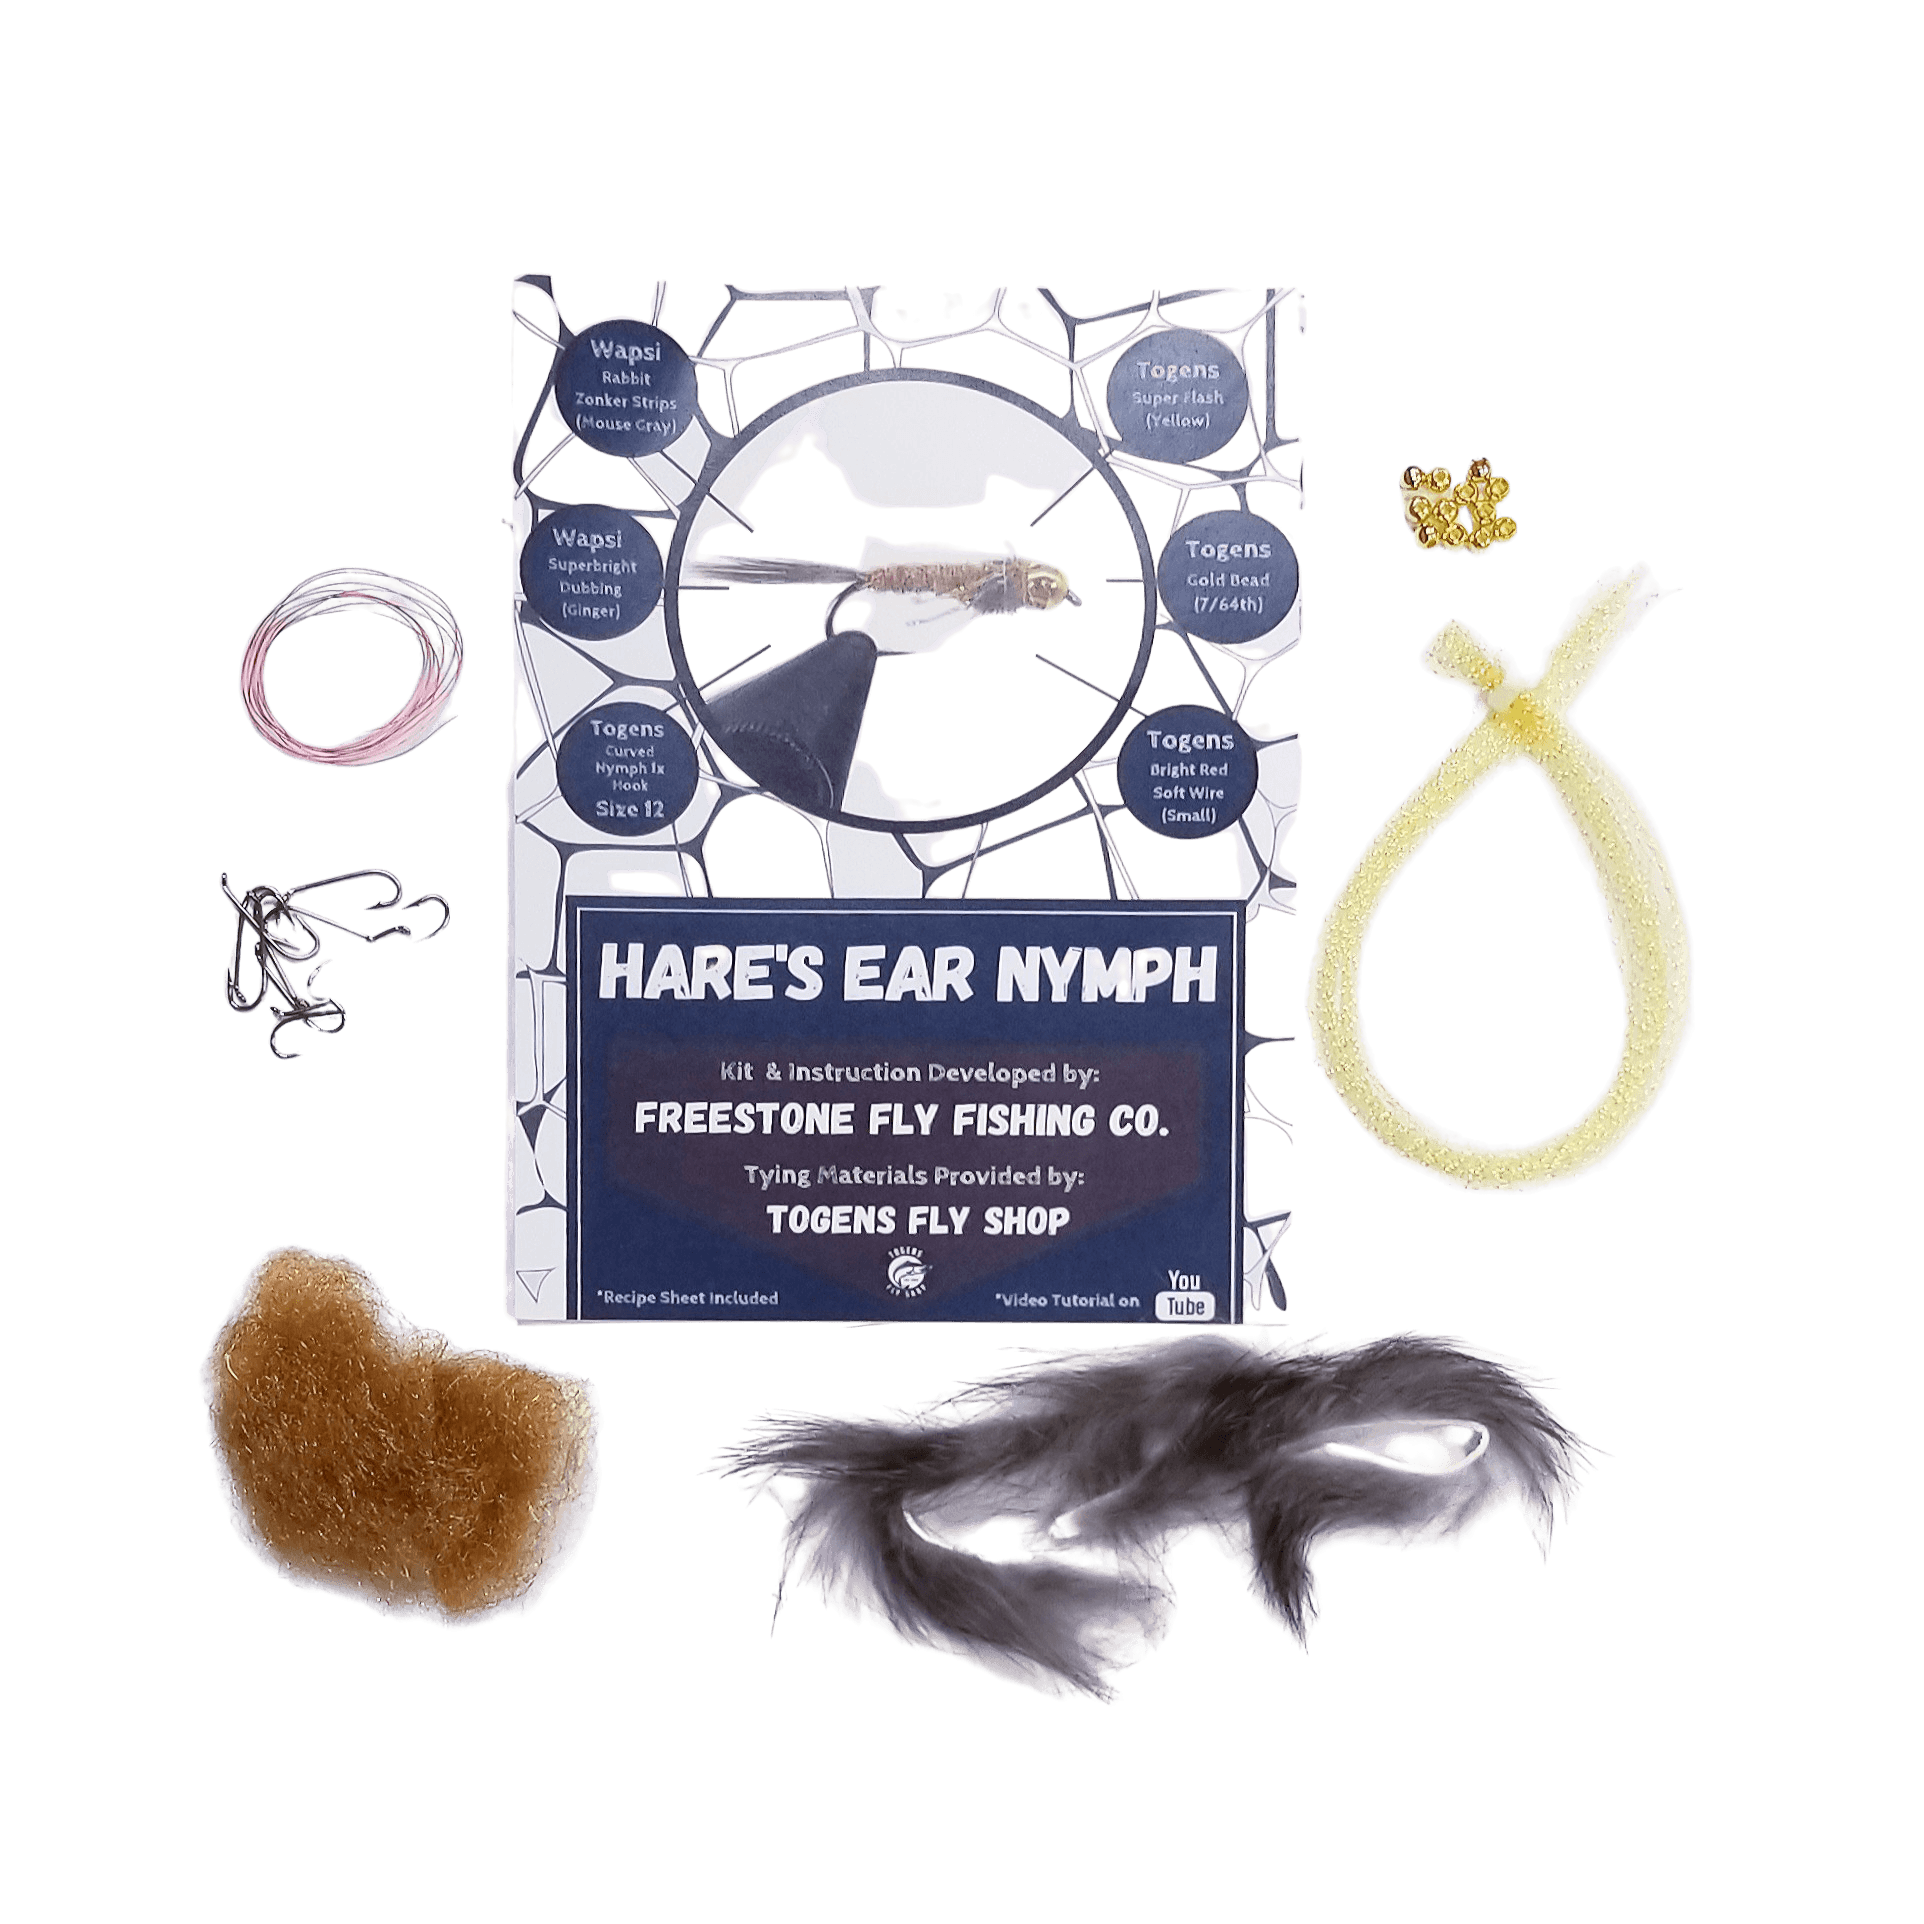 Hare's Ear Nymph - Togens Fly Shopfly tying kit